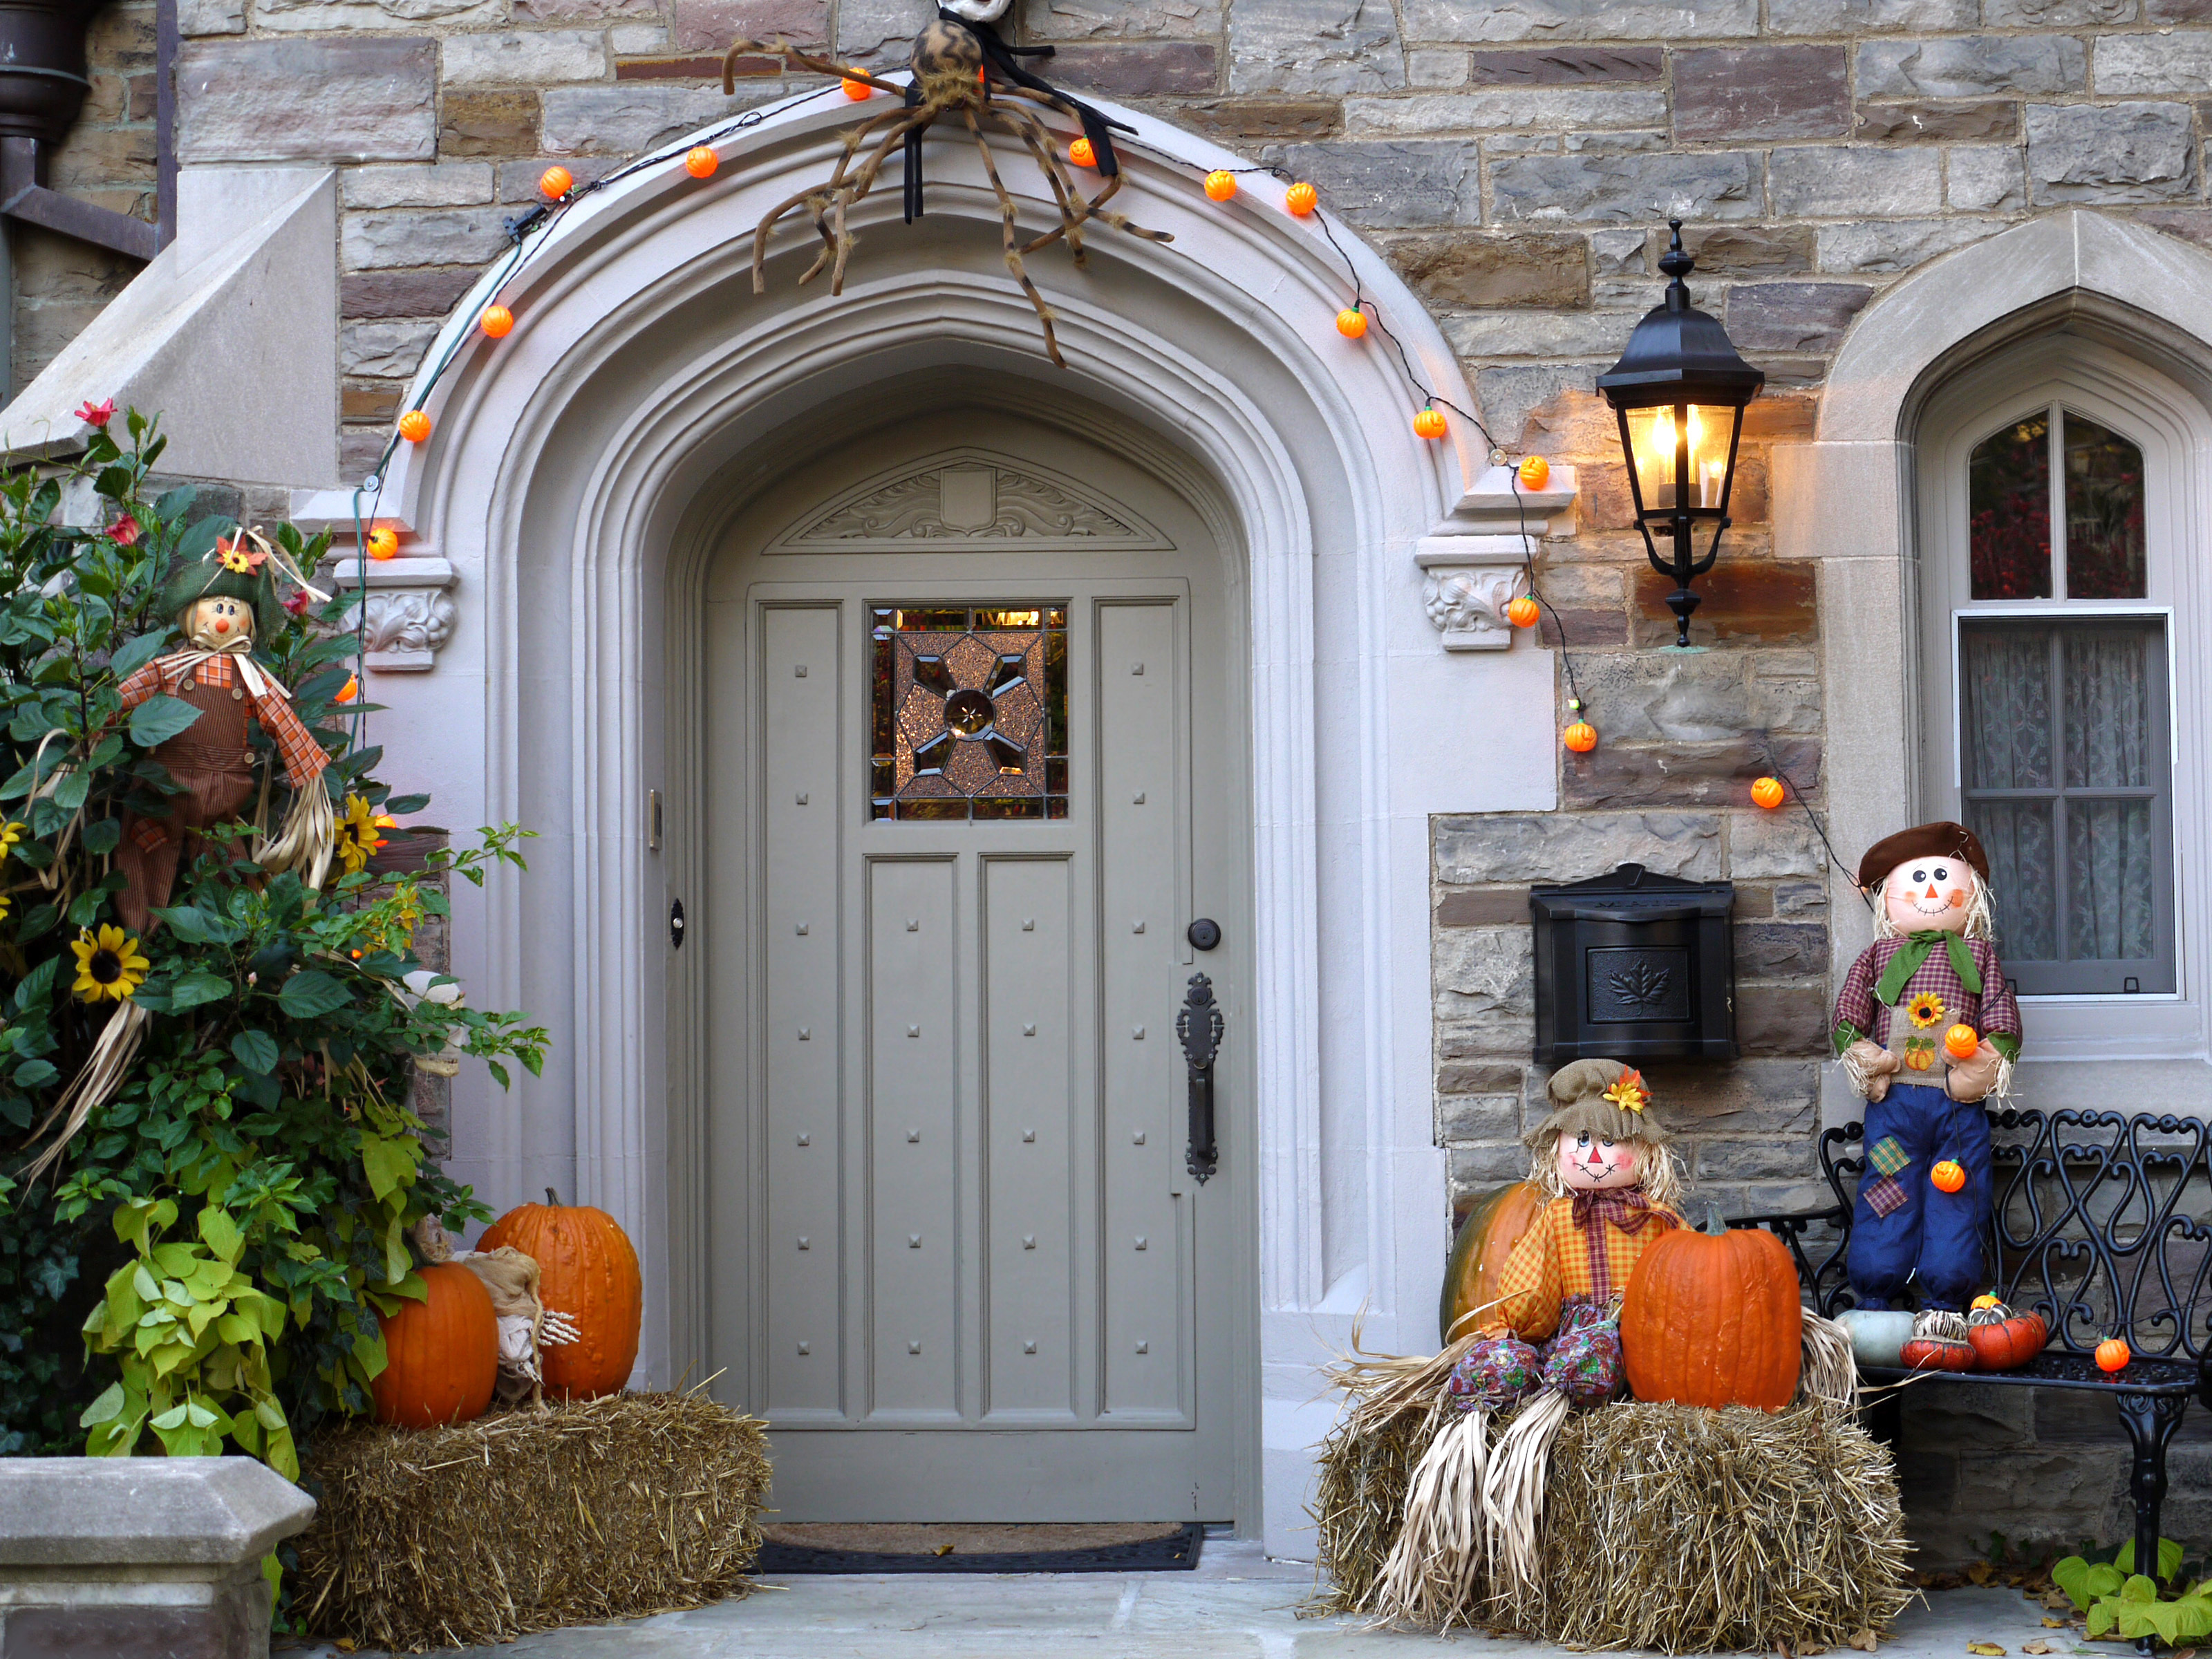 18th birthday house party ideas - Halloween Home Decorations